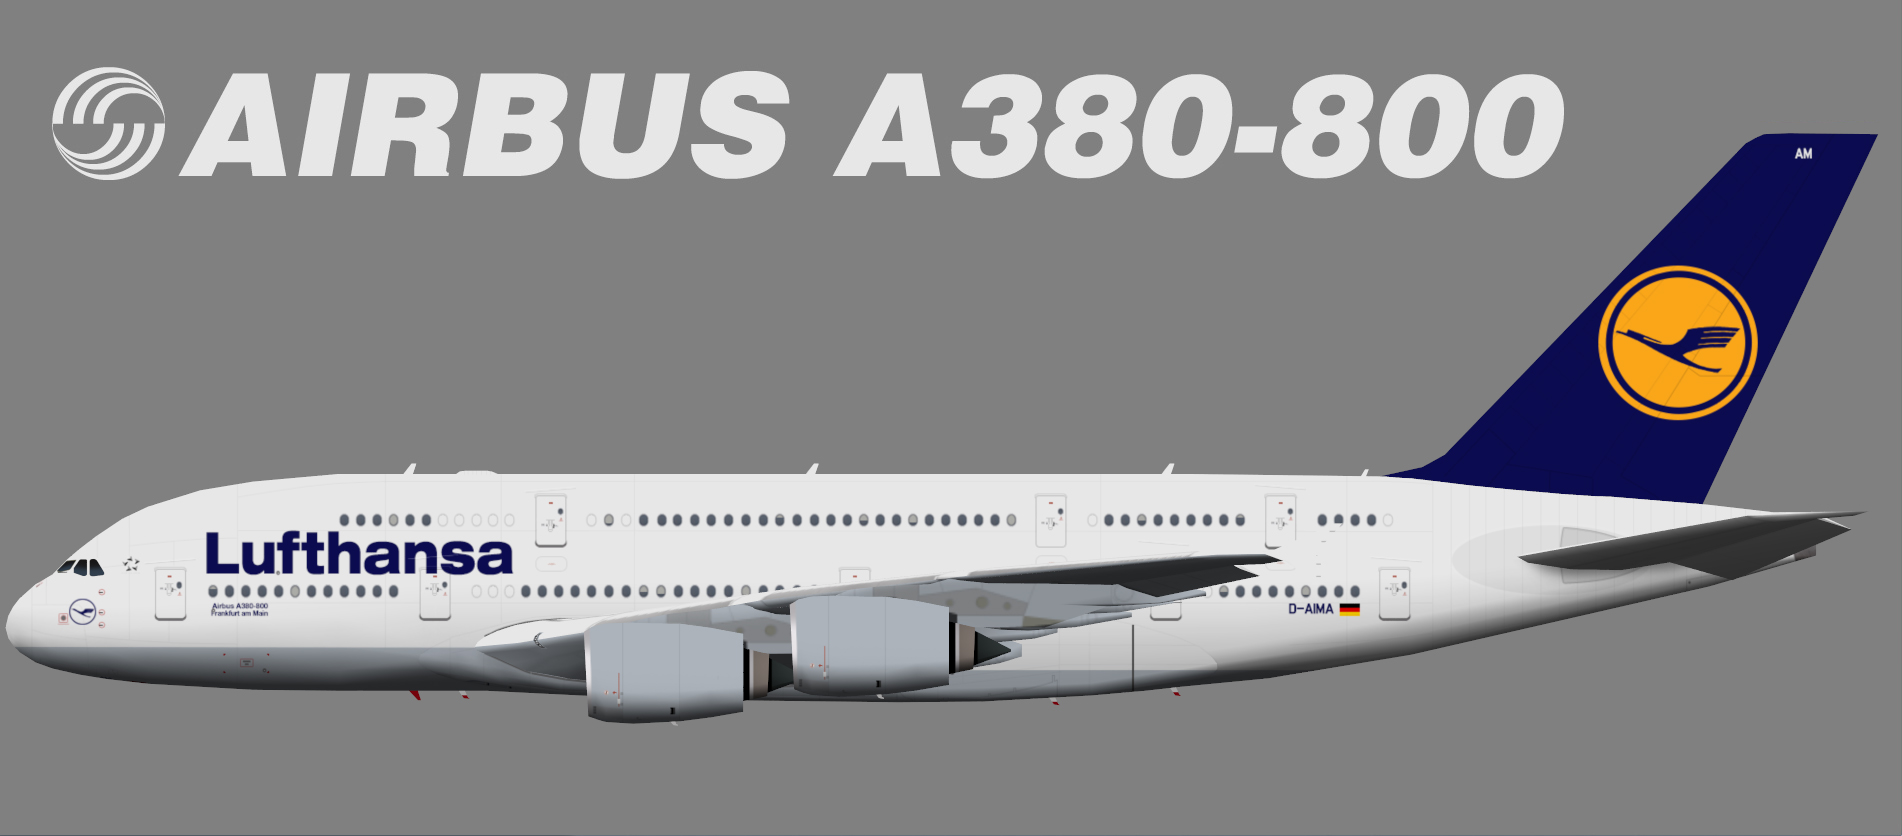 lufthansa airbus a380 800 juergen 39 s paint hangar. Black Bedroom Furniture Sets. Home Design Ideas